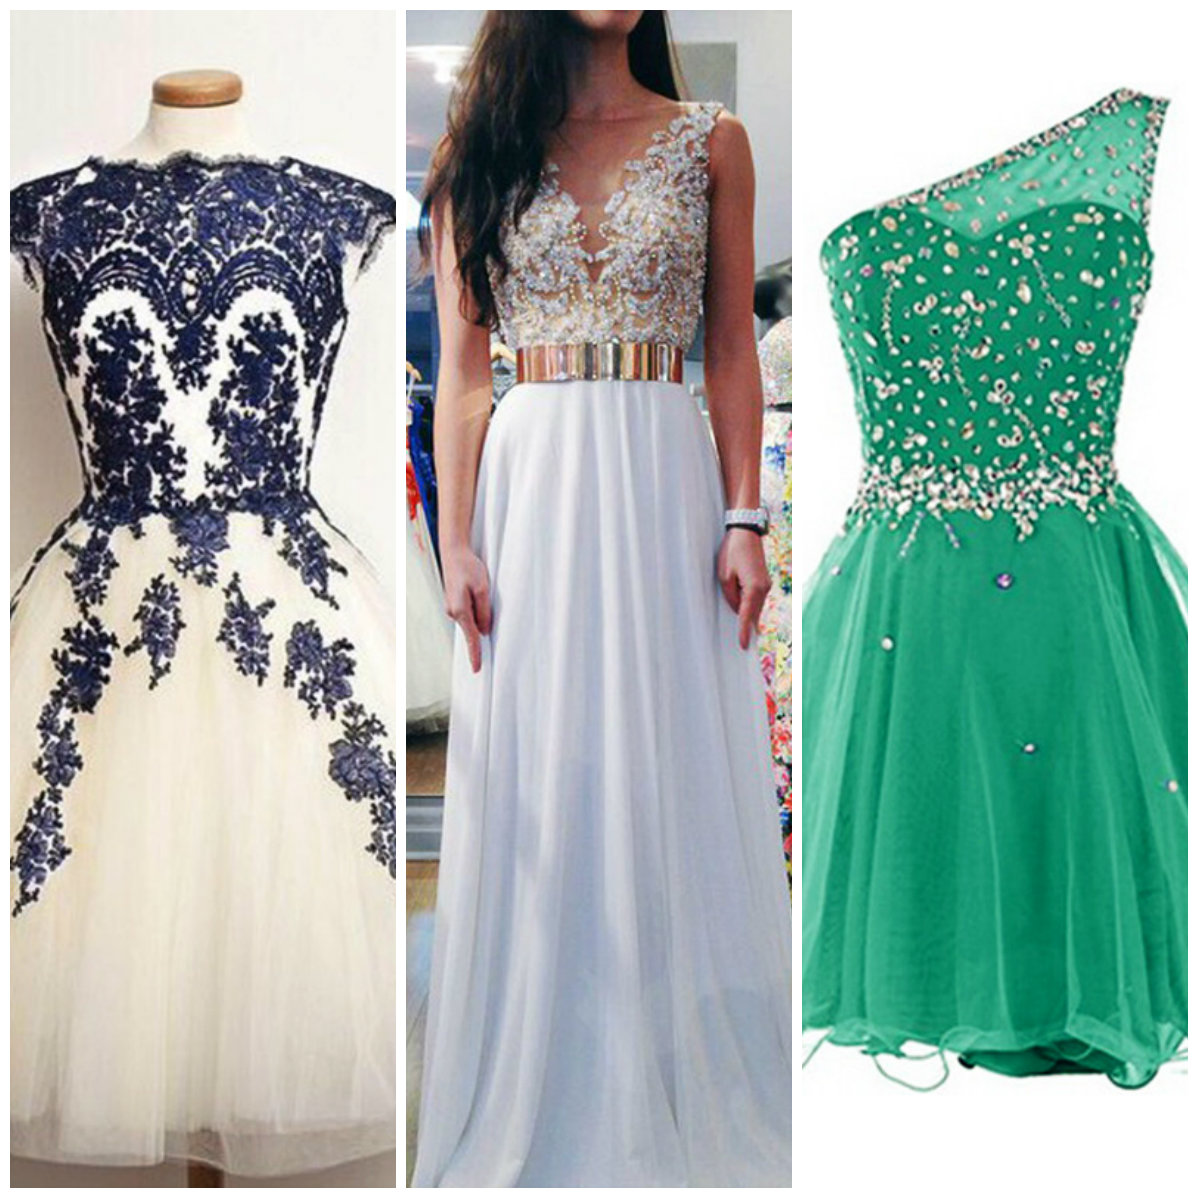 Fashion Studio Magazine Prom Dresses For 2017